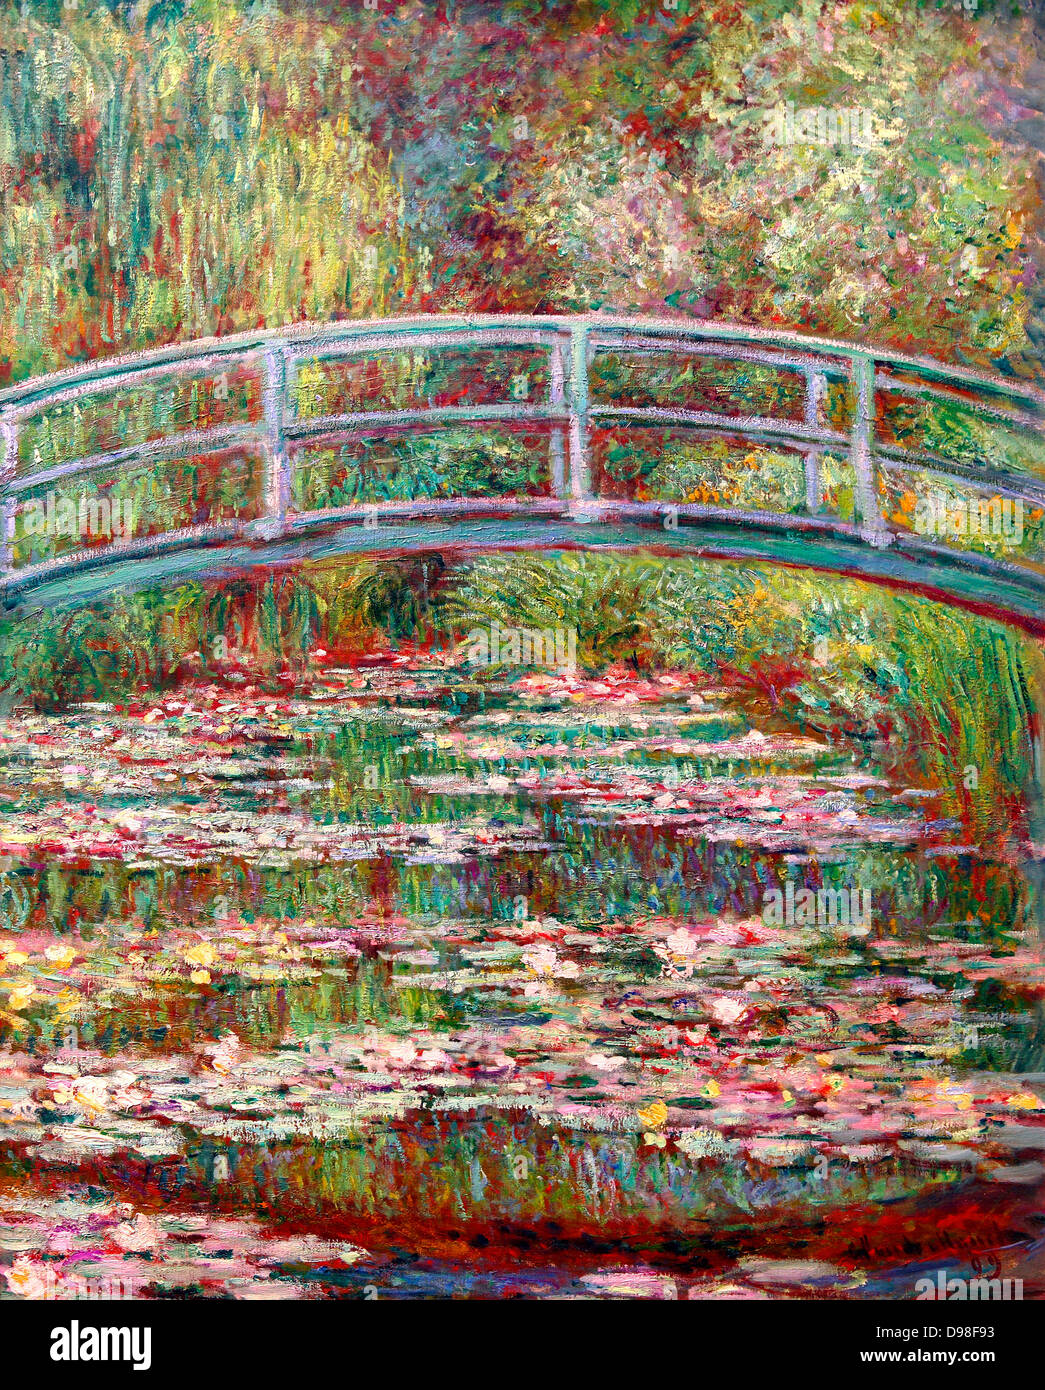 Bridge Over a Pond of Water Lilies, Claude Monet 1899 - Stock Image